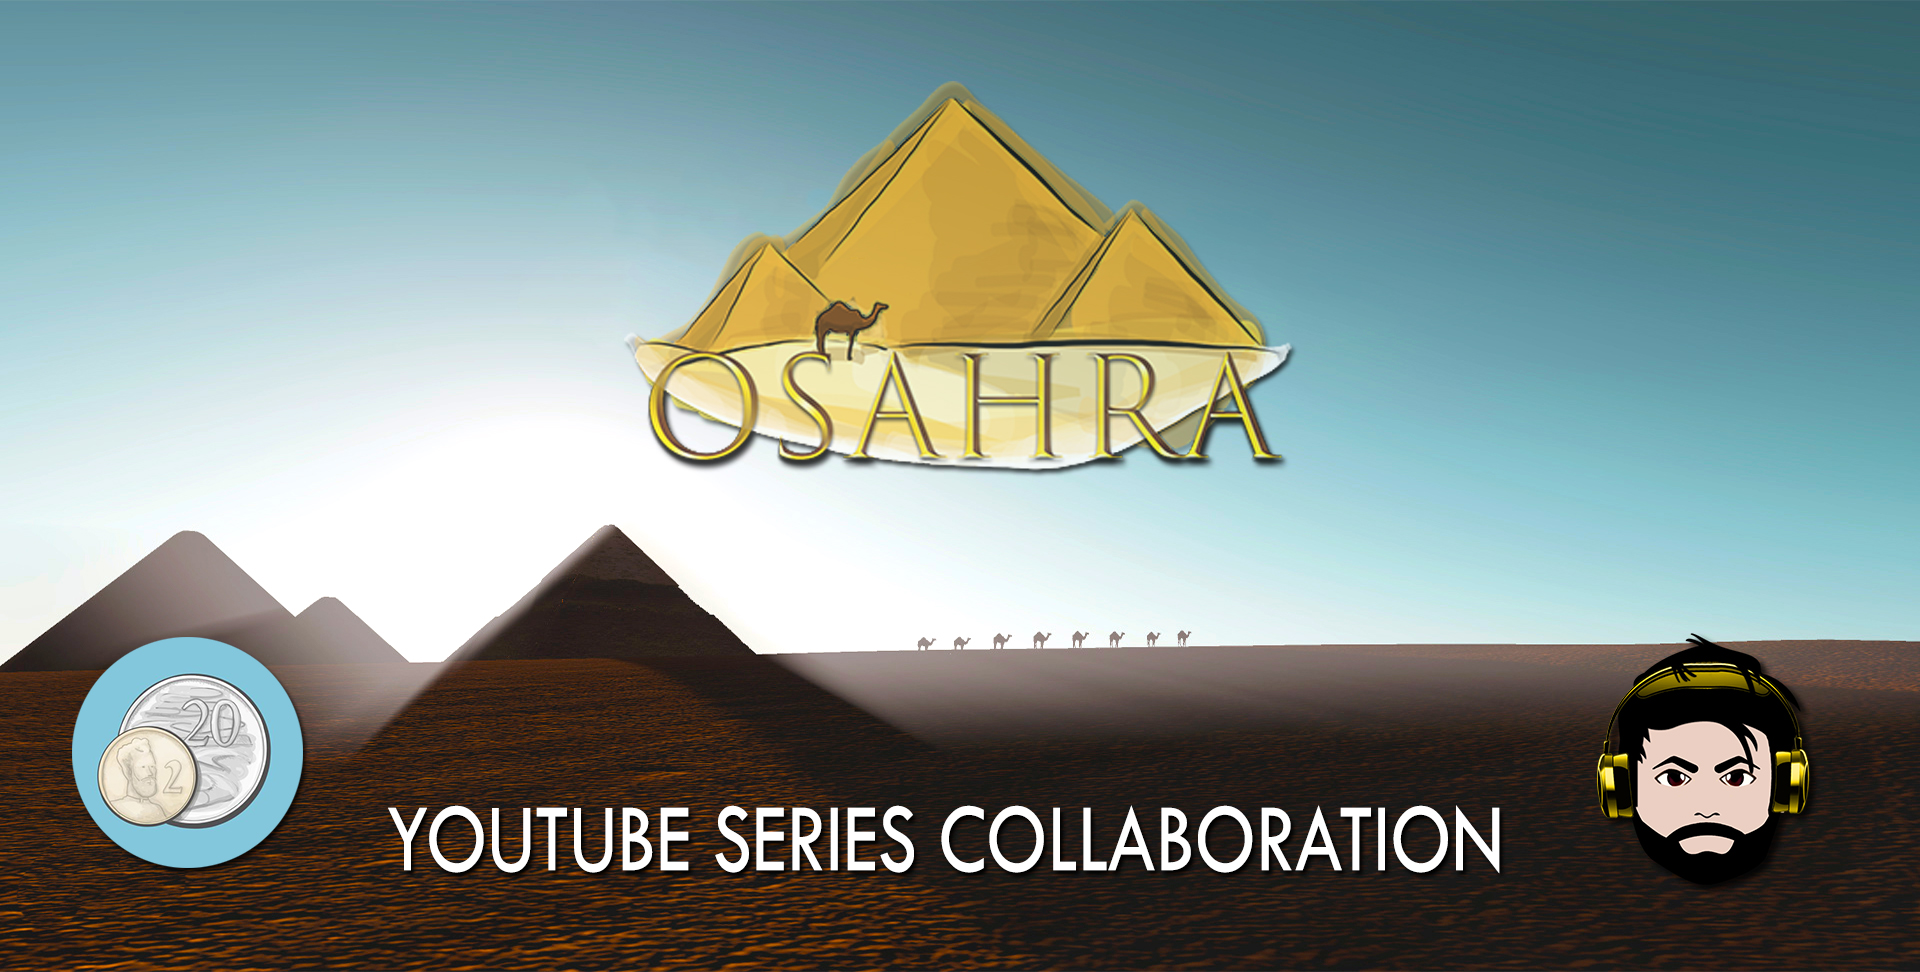 Steam Workshop :: Osahra Asset Collection